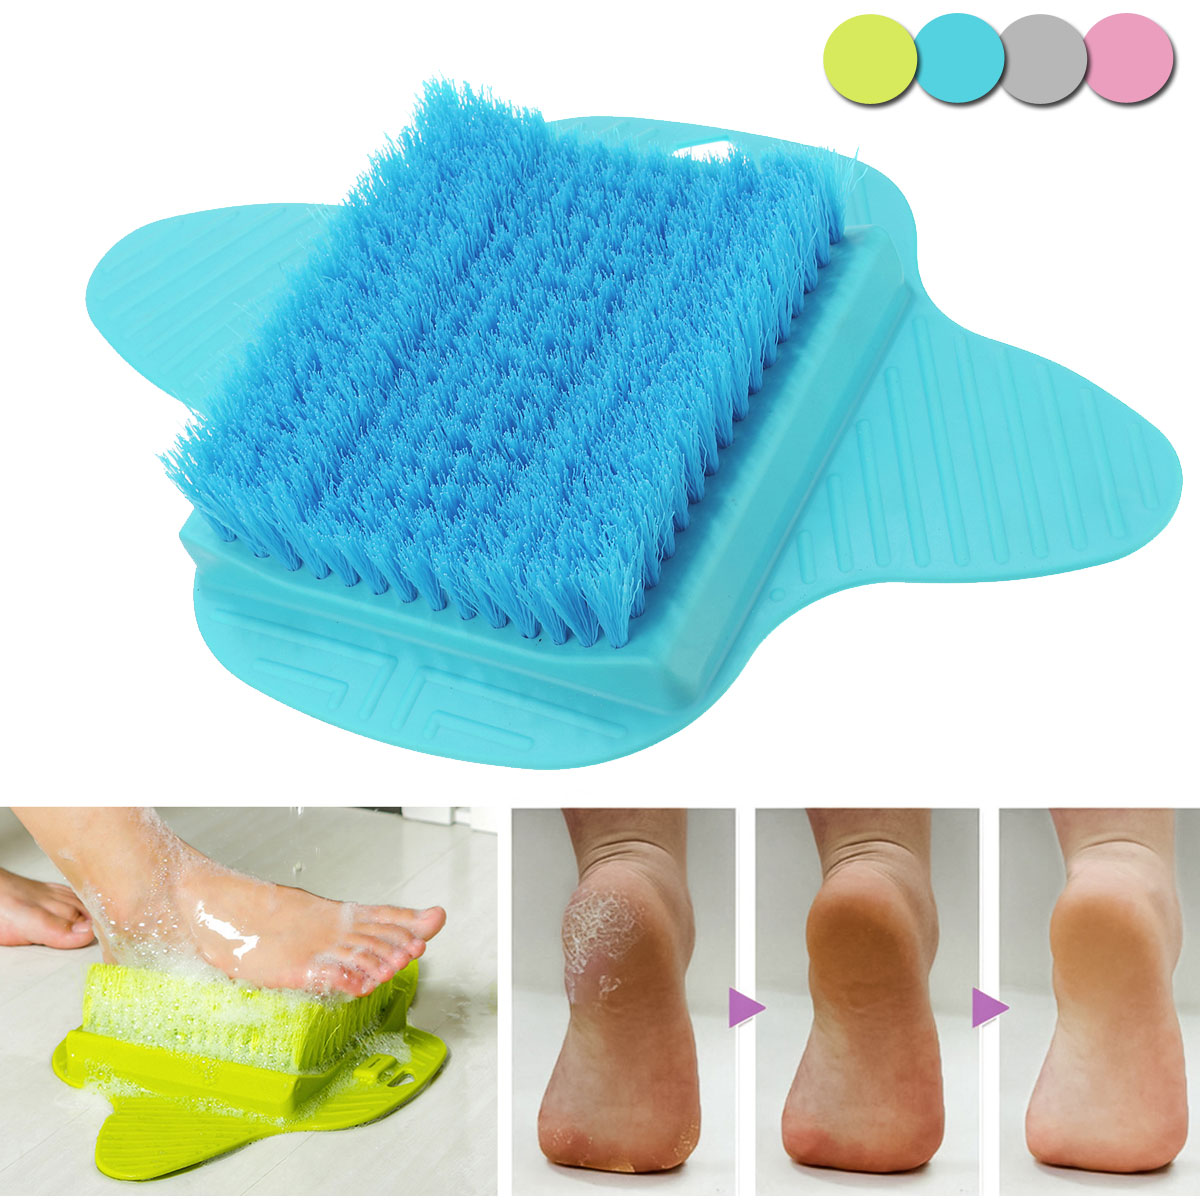 Honana BB-064 Bath Foot Cleaner Scrub Brush Exfoliating Feet ...